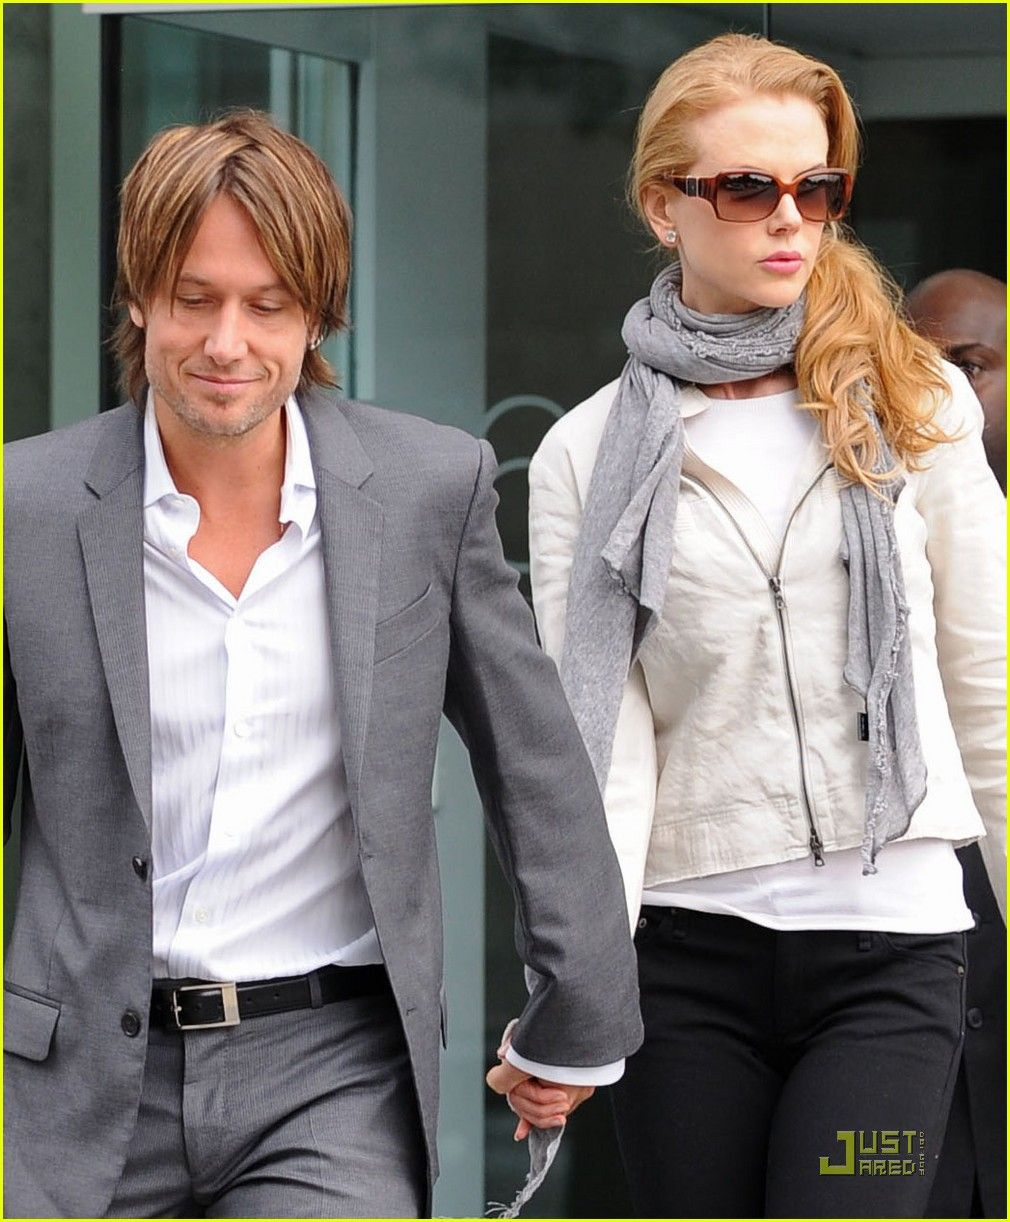 Relationship Advice From Keith Urban And Nicole Kidman: Keith Urban And Nicole Kidman..... They Obviously Love